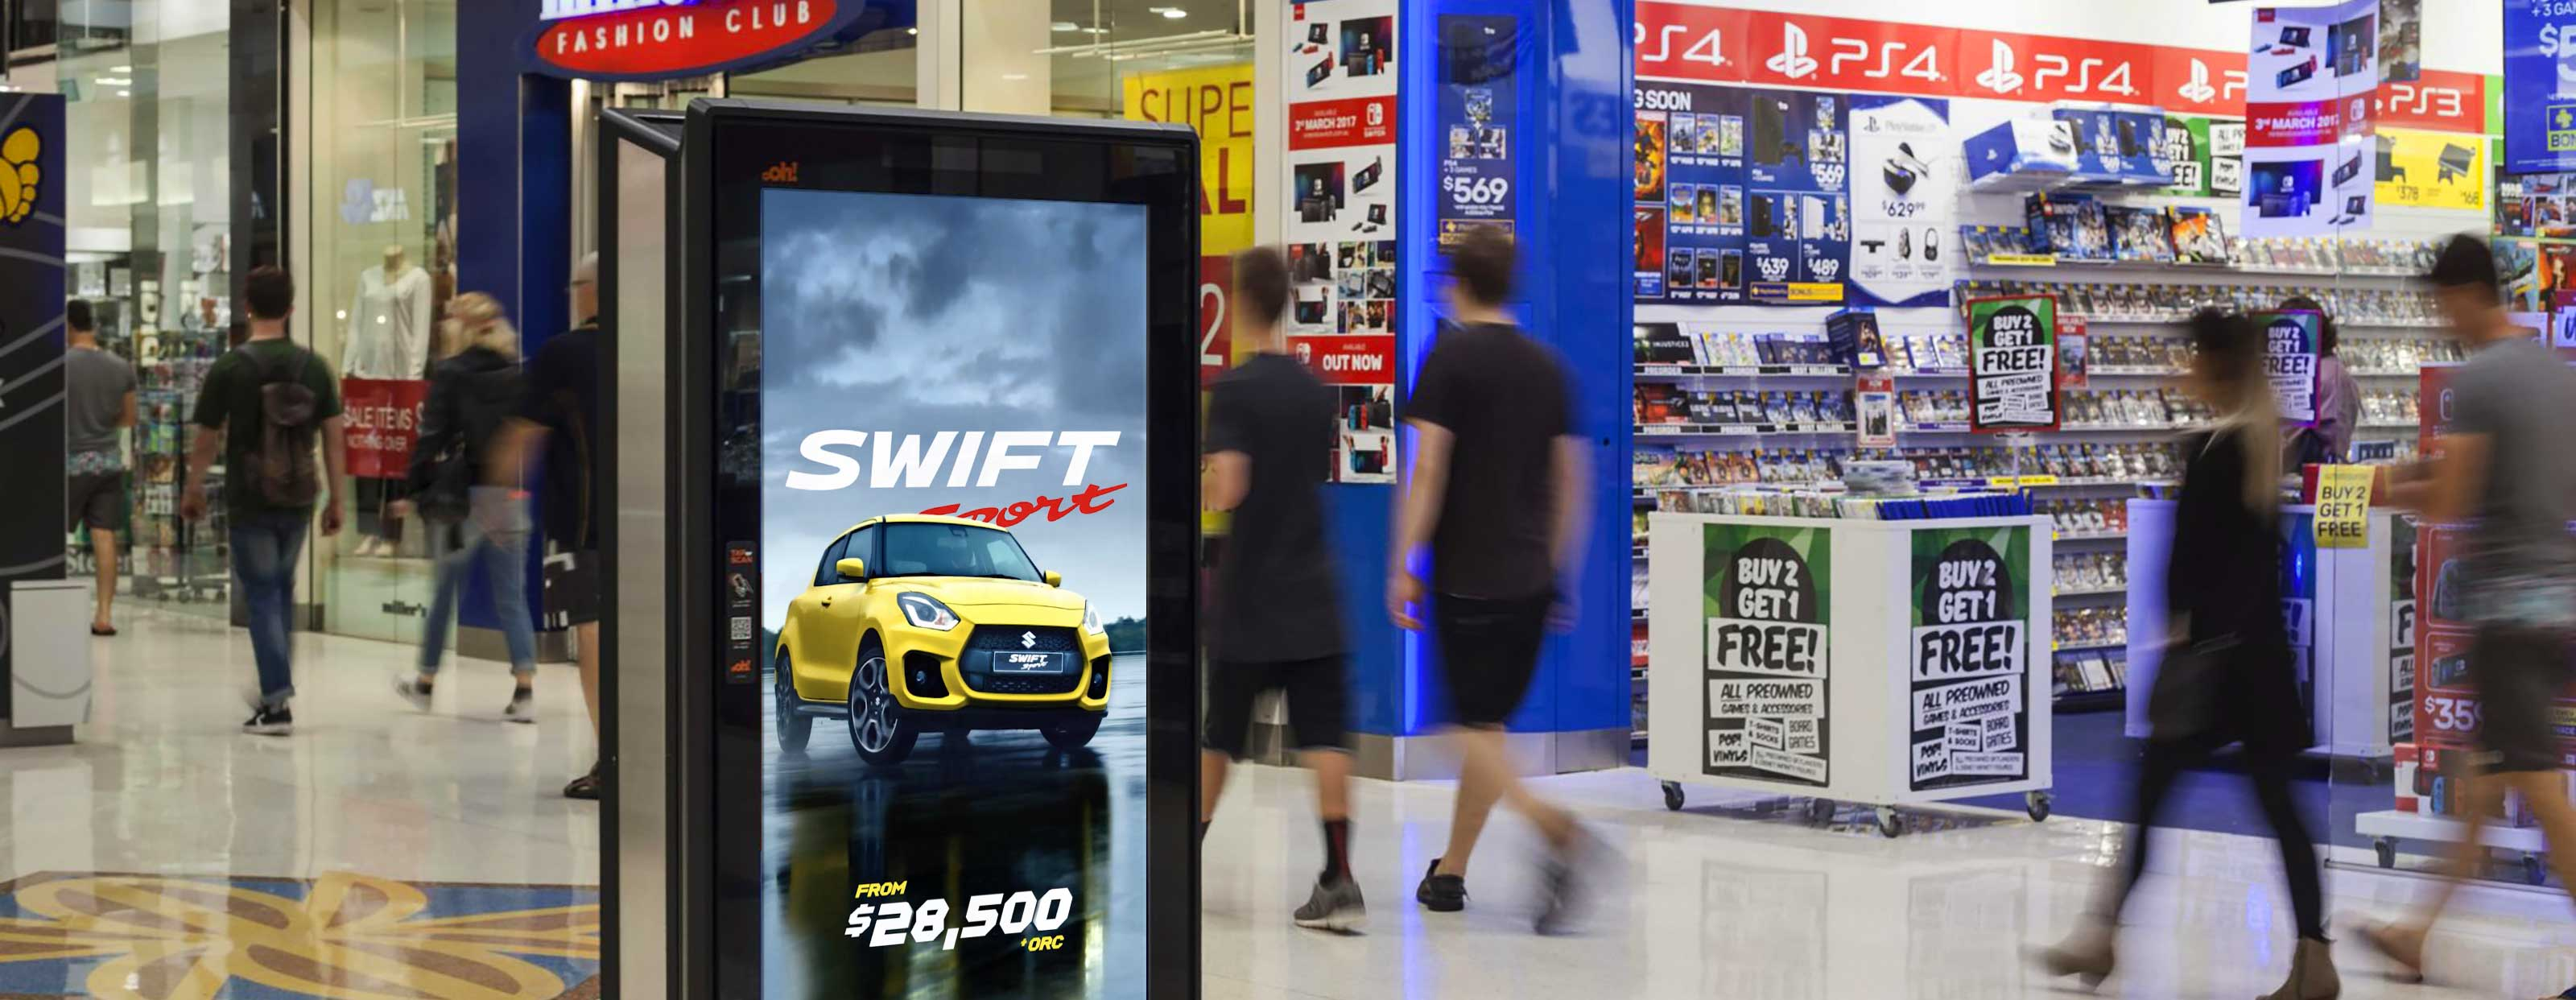 Swift Sport Mall display